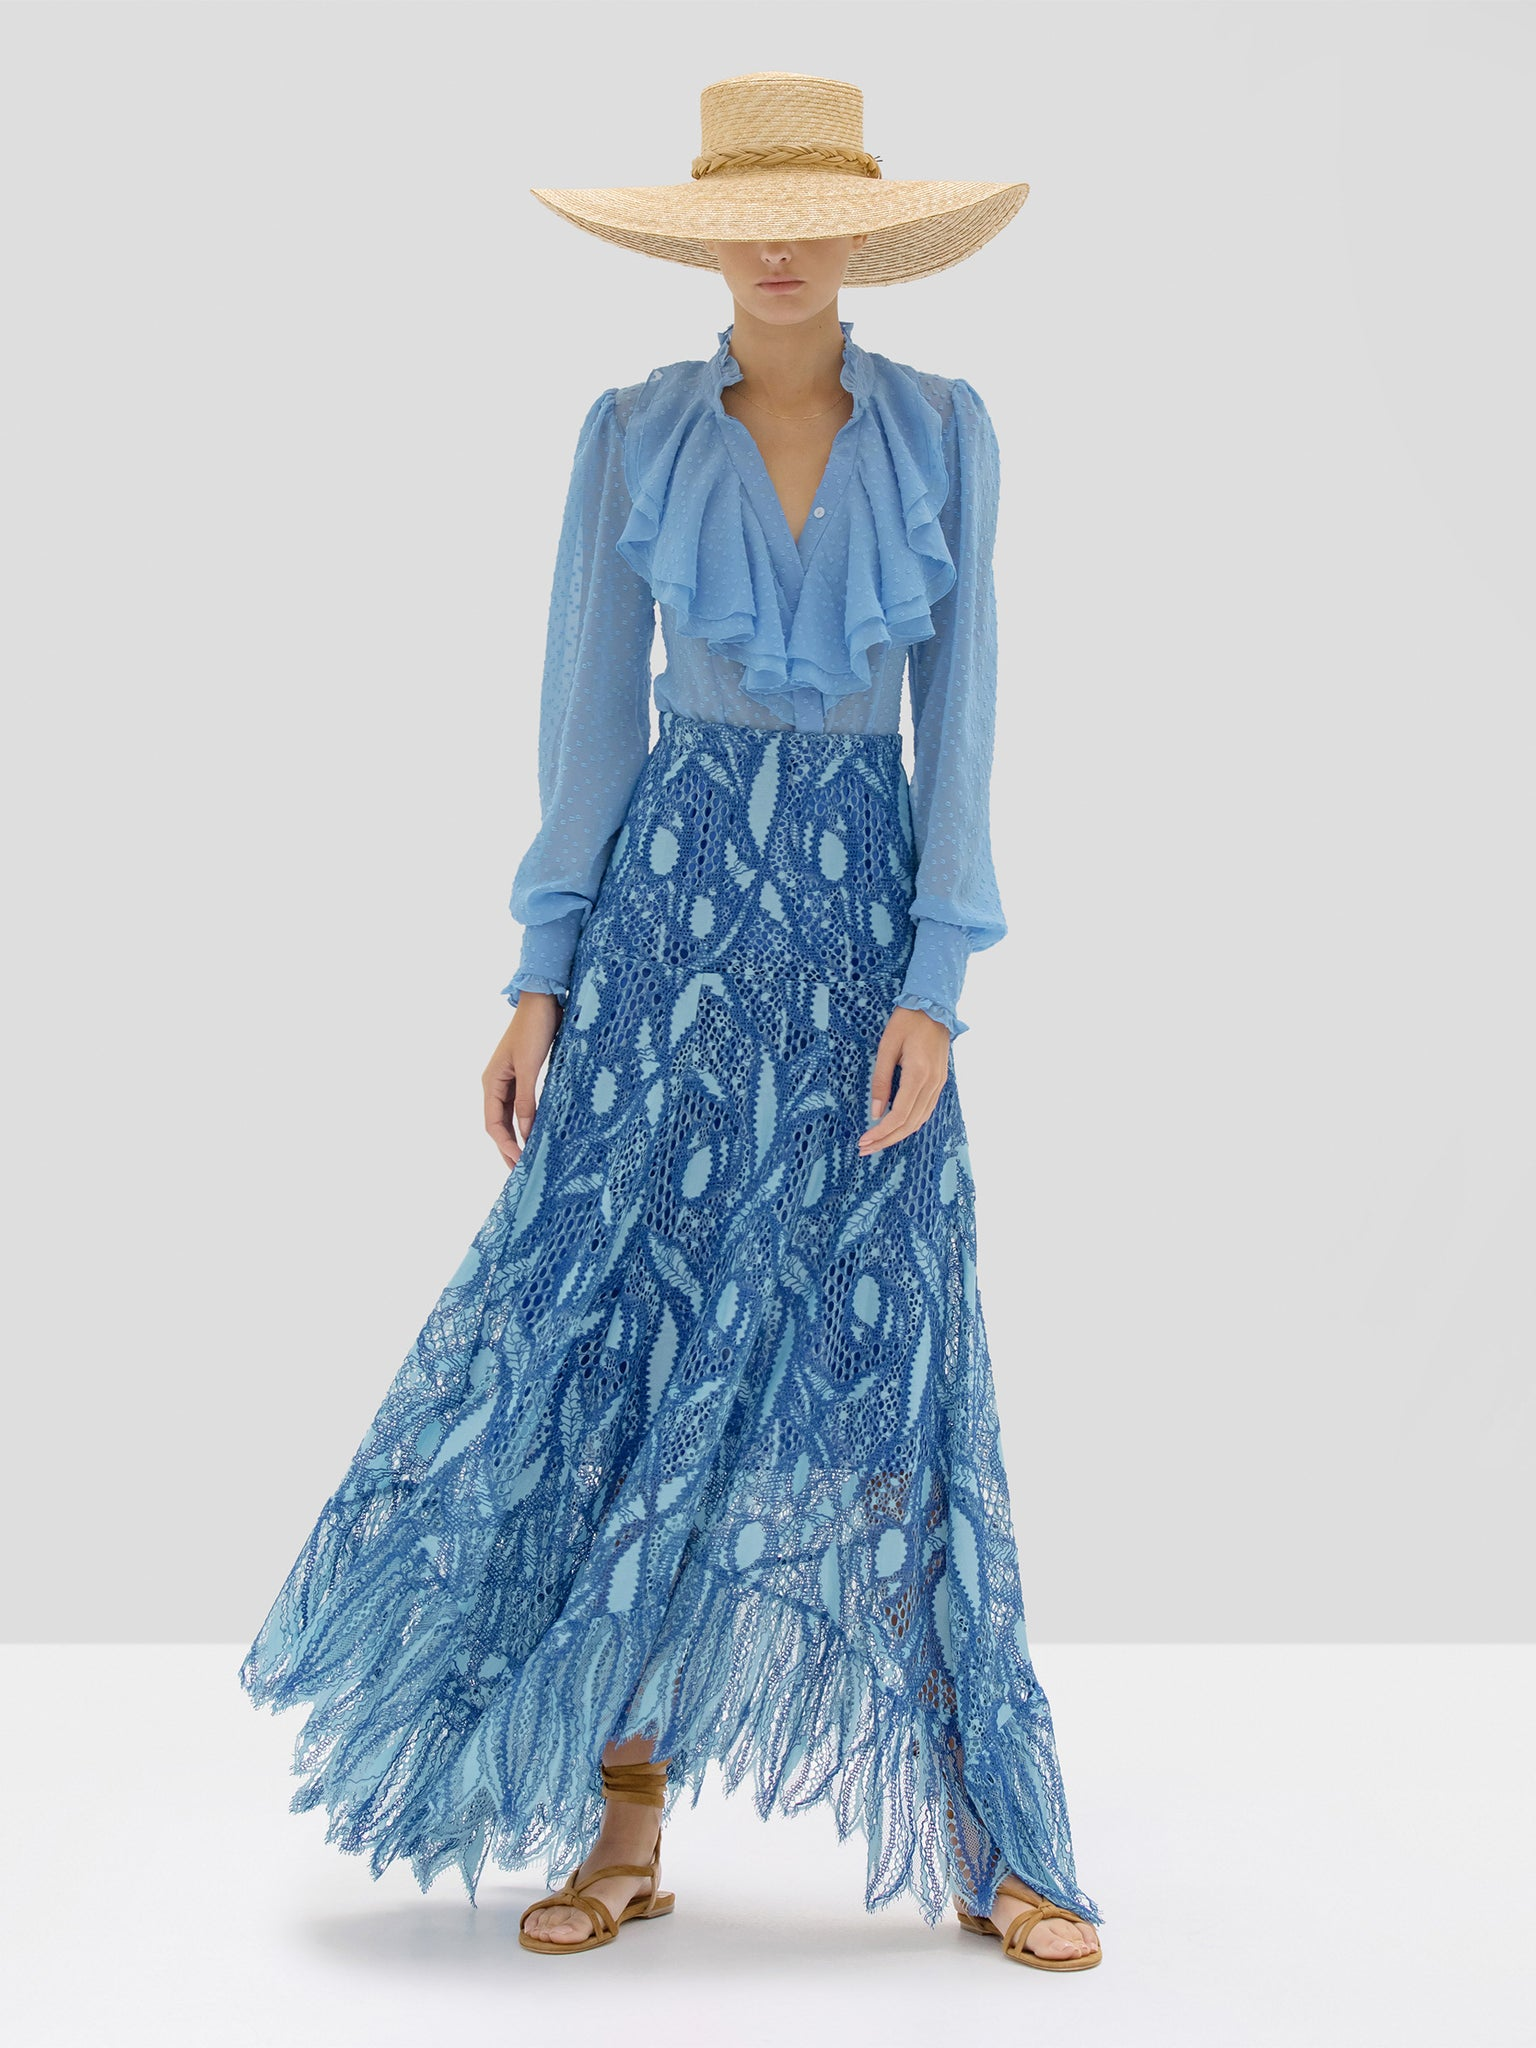 Alexis Benham Top and Kauri Skirt in Blue Lace Embroidery from Spring Summer 2020